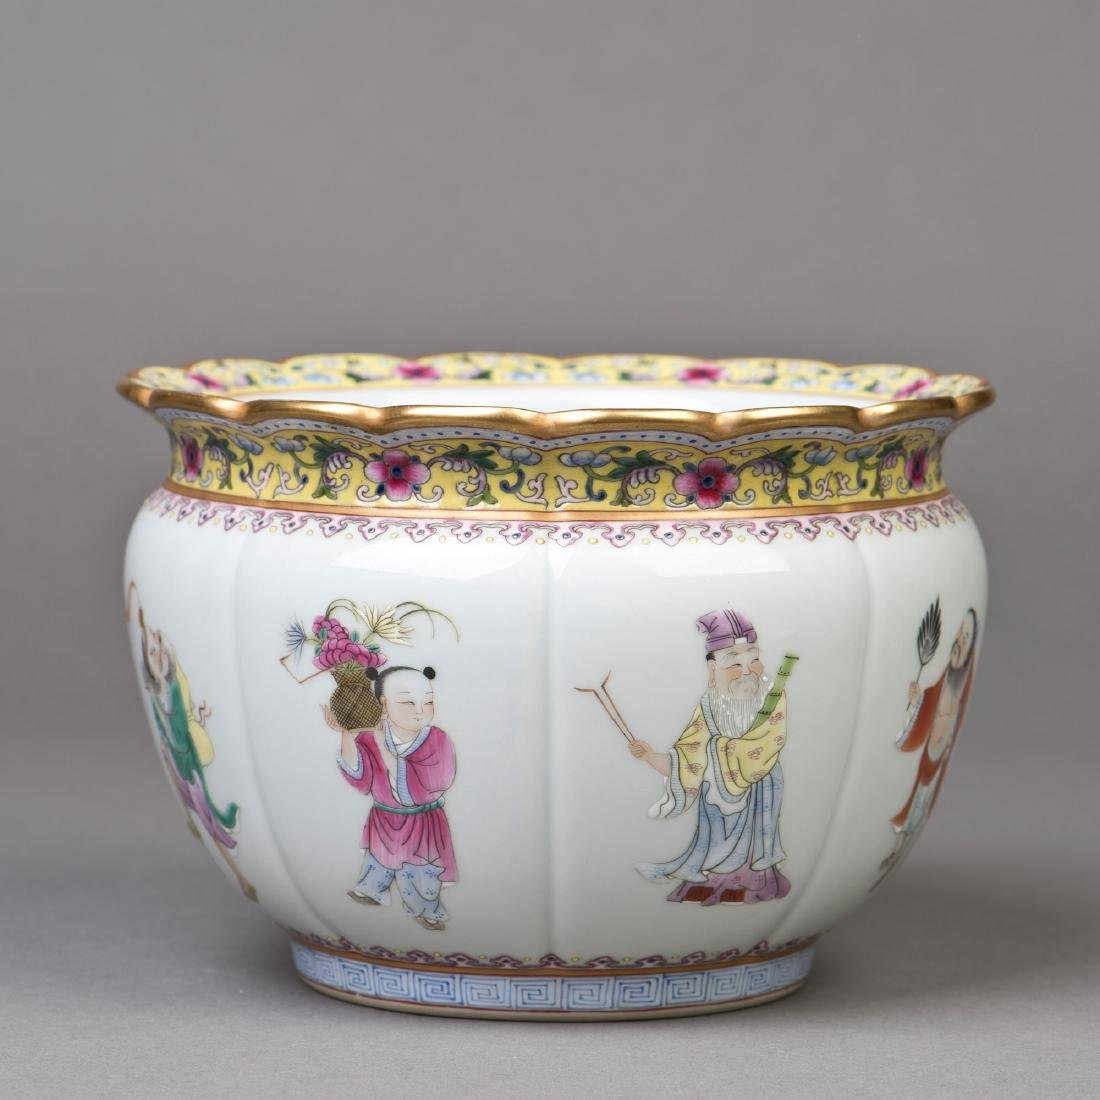 A EIGHT-IMMORTAL MOTIF PORCELAIN JAR